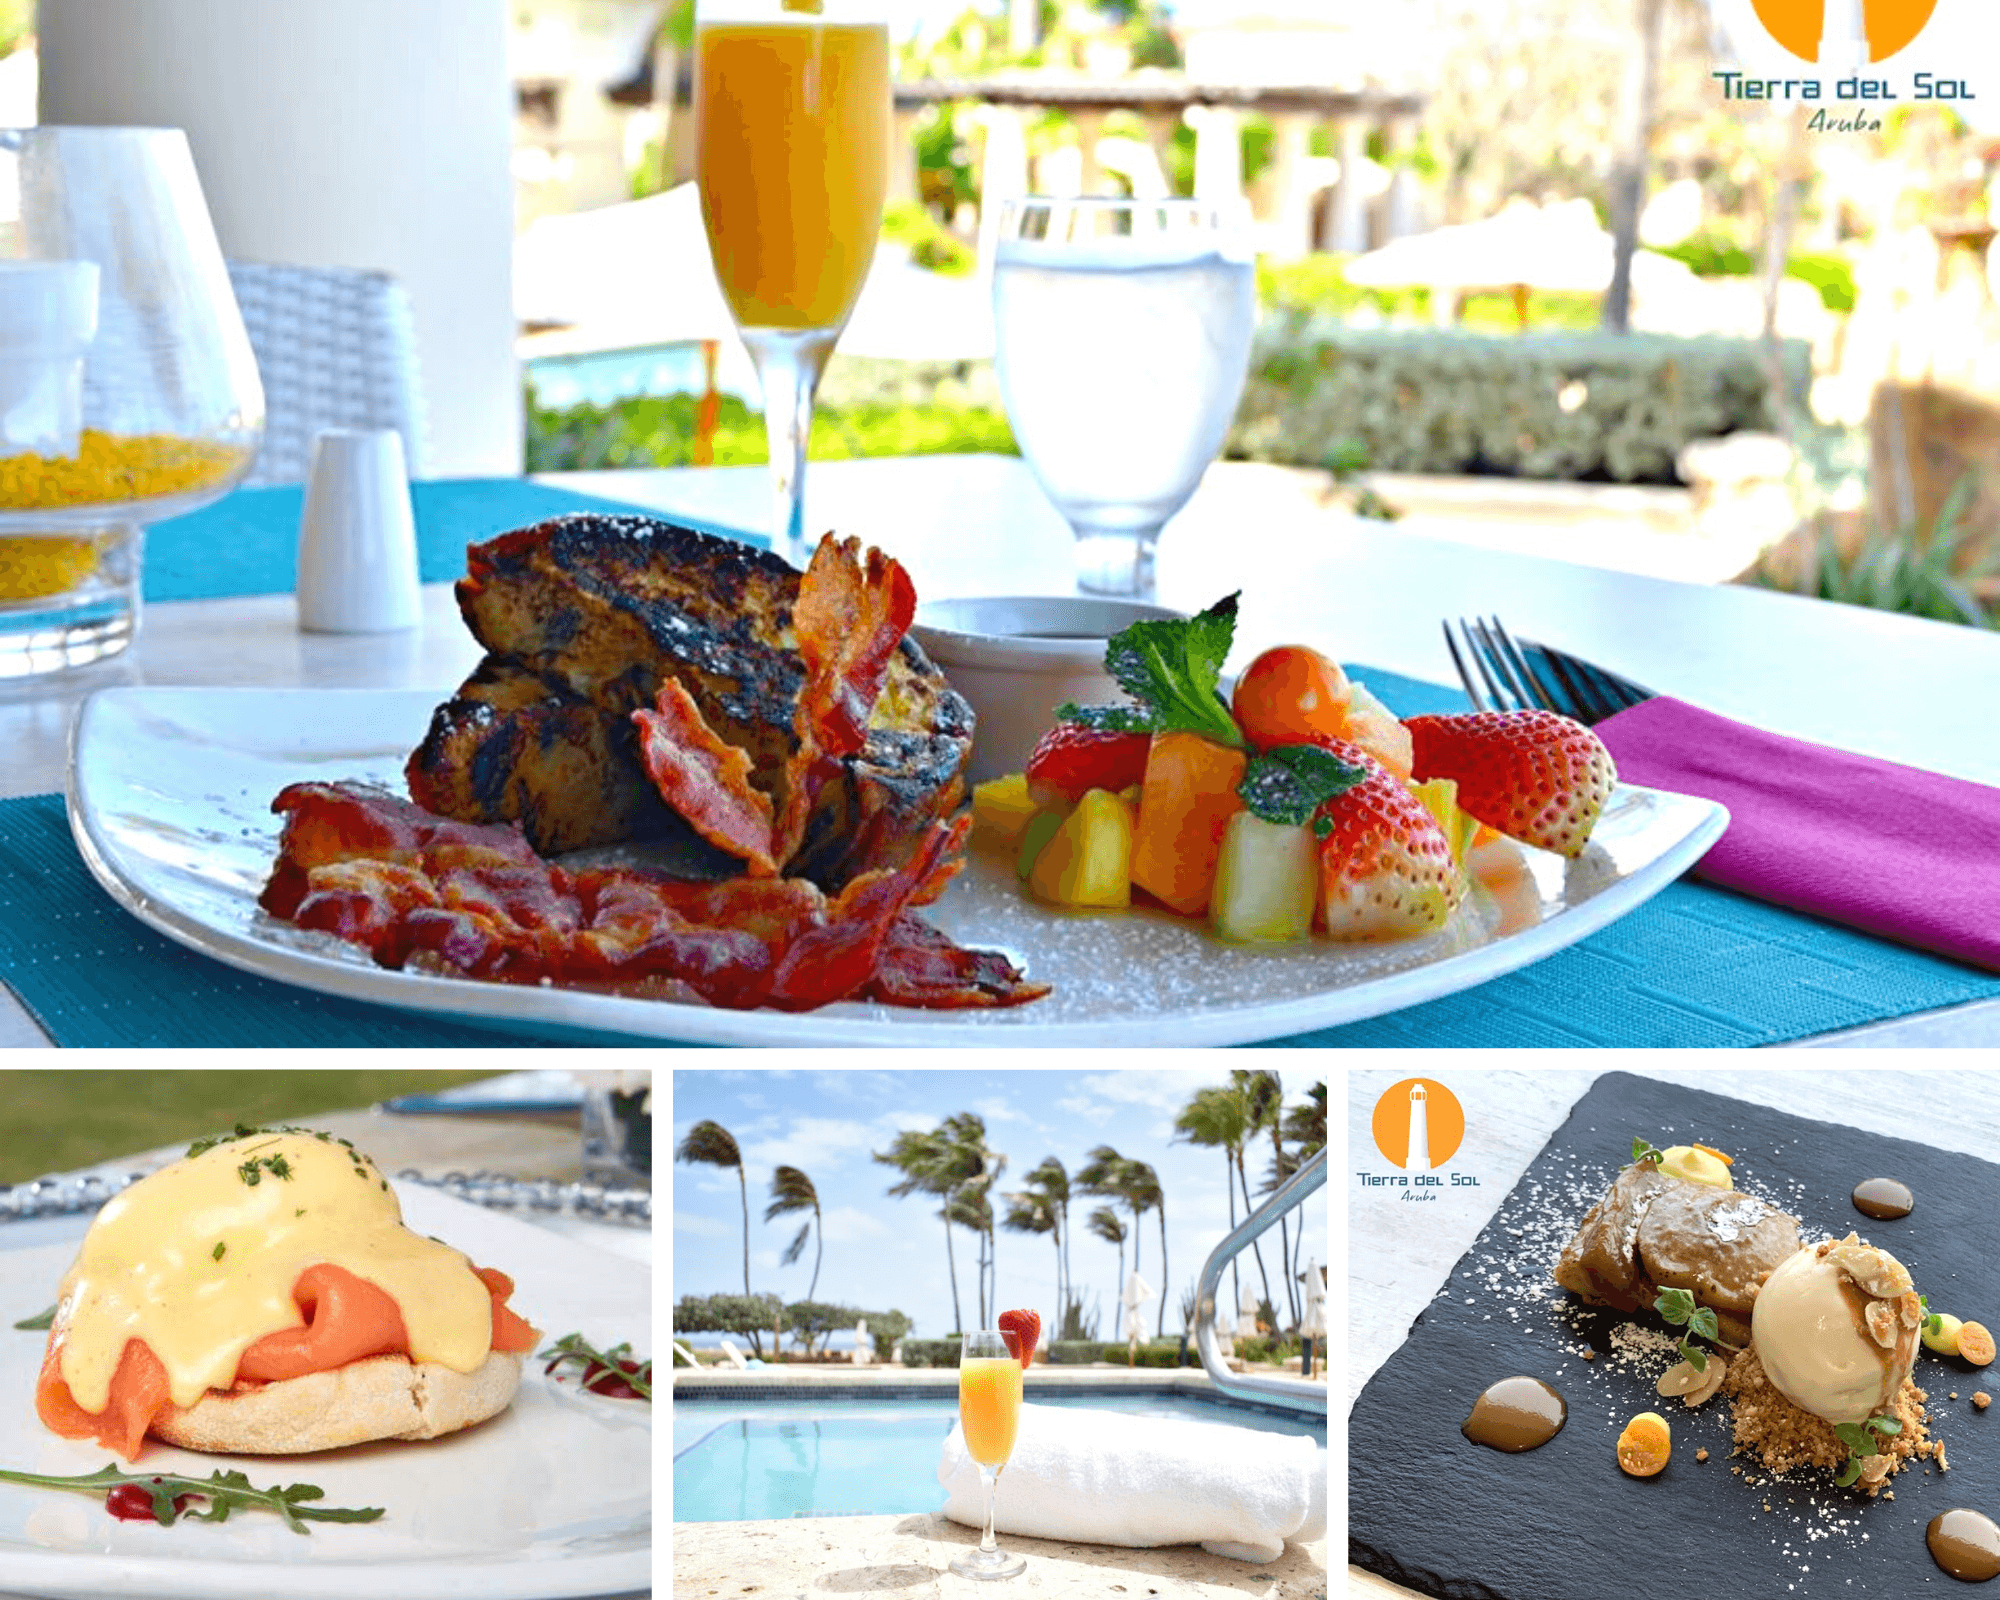 Aruba_Bubbly_Sunday_Brunch_Blog-by-megan-rojer_The-restaurant-at-tierra-del-sol